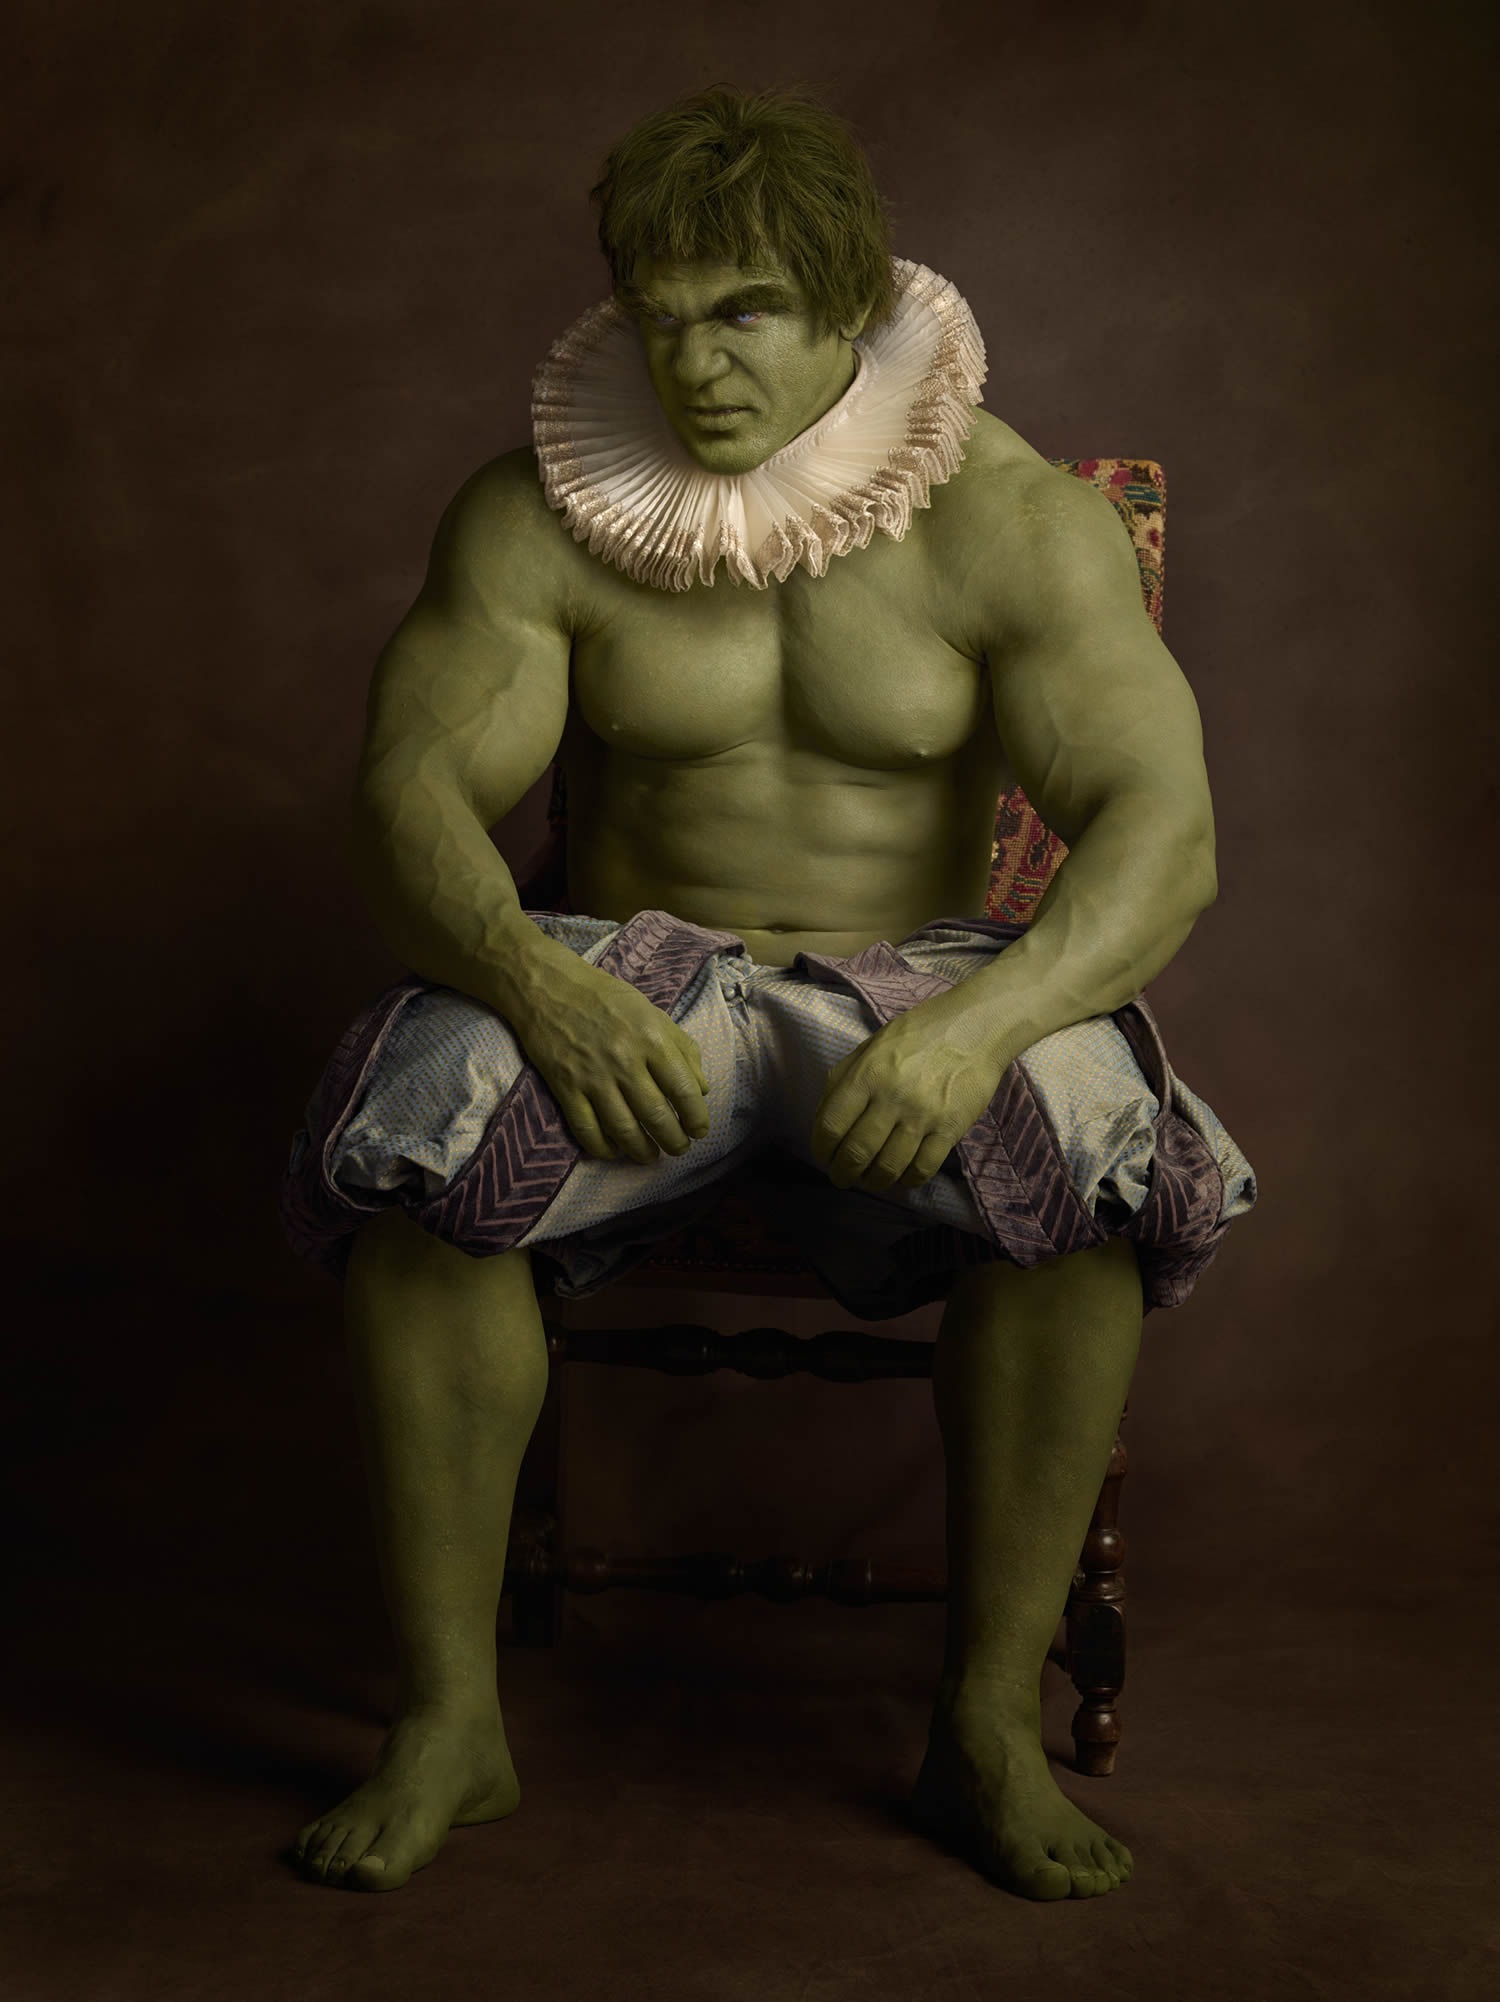 the hulk, photo by sasha goldberger